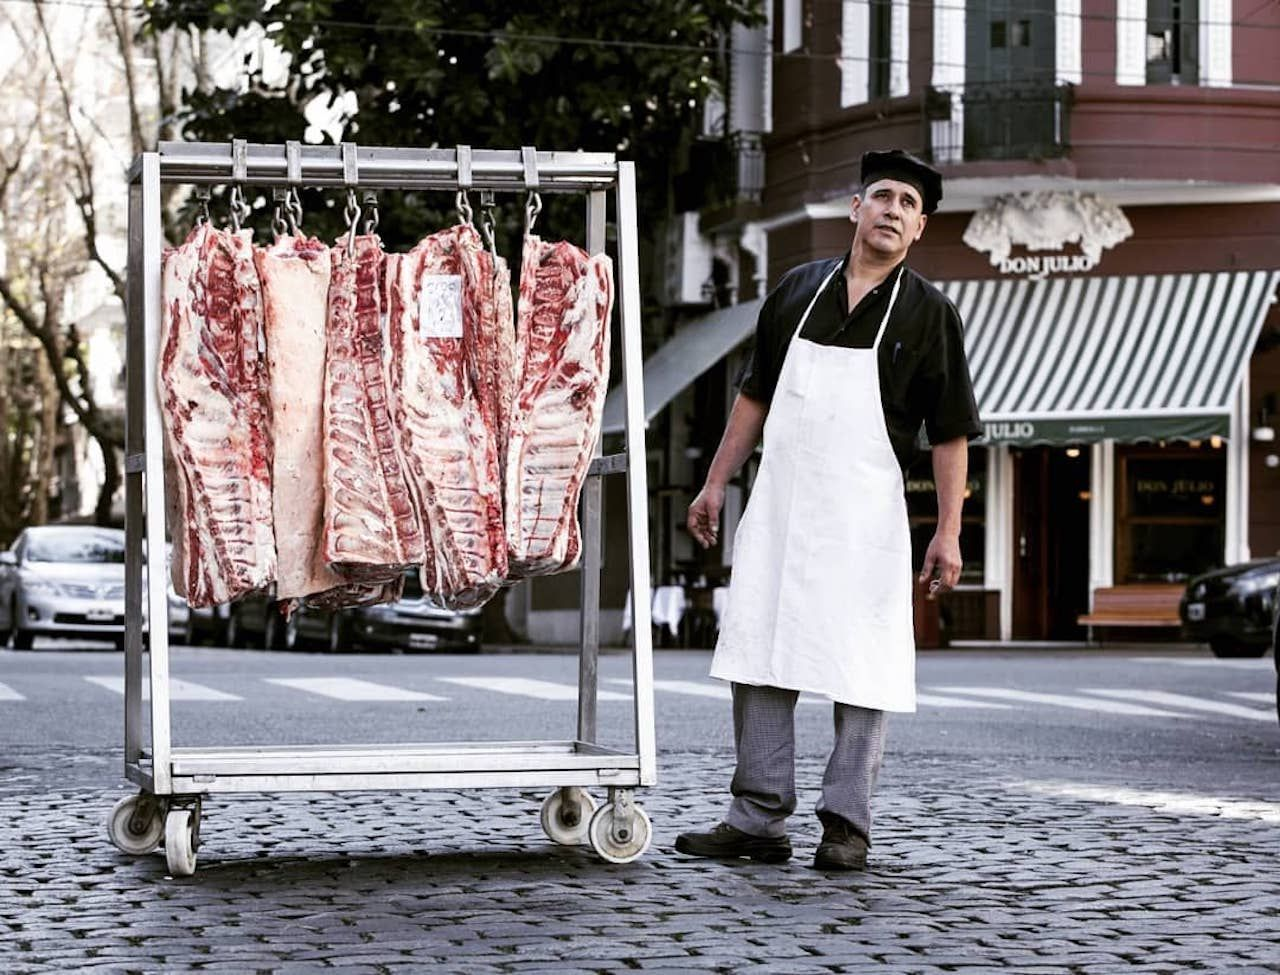 Man standing by rack of meat